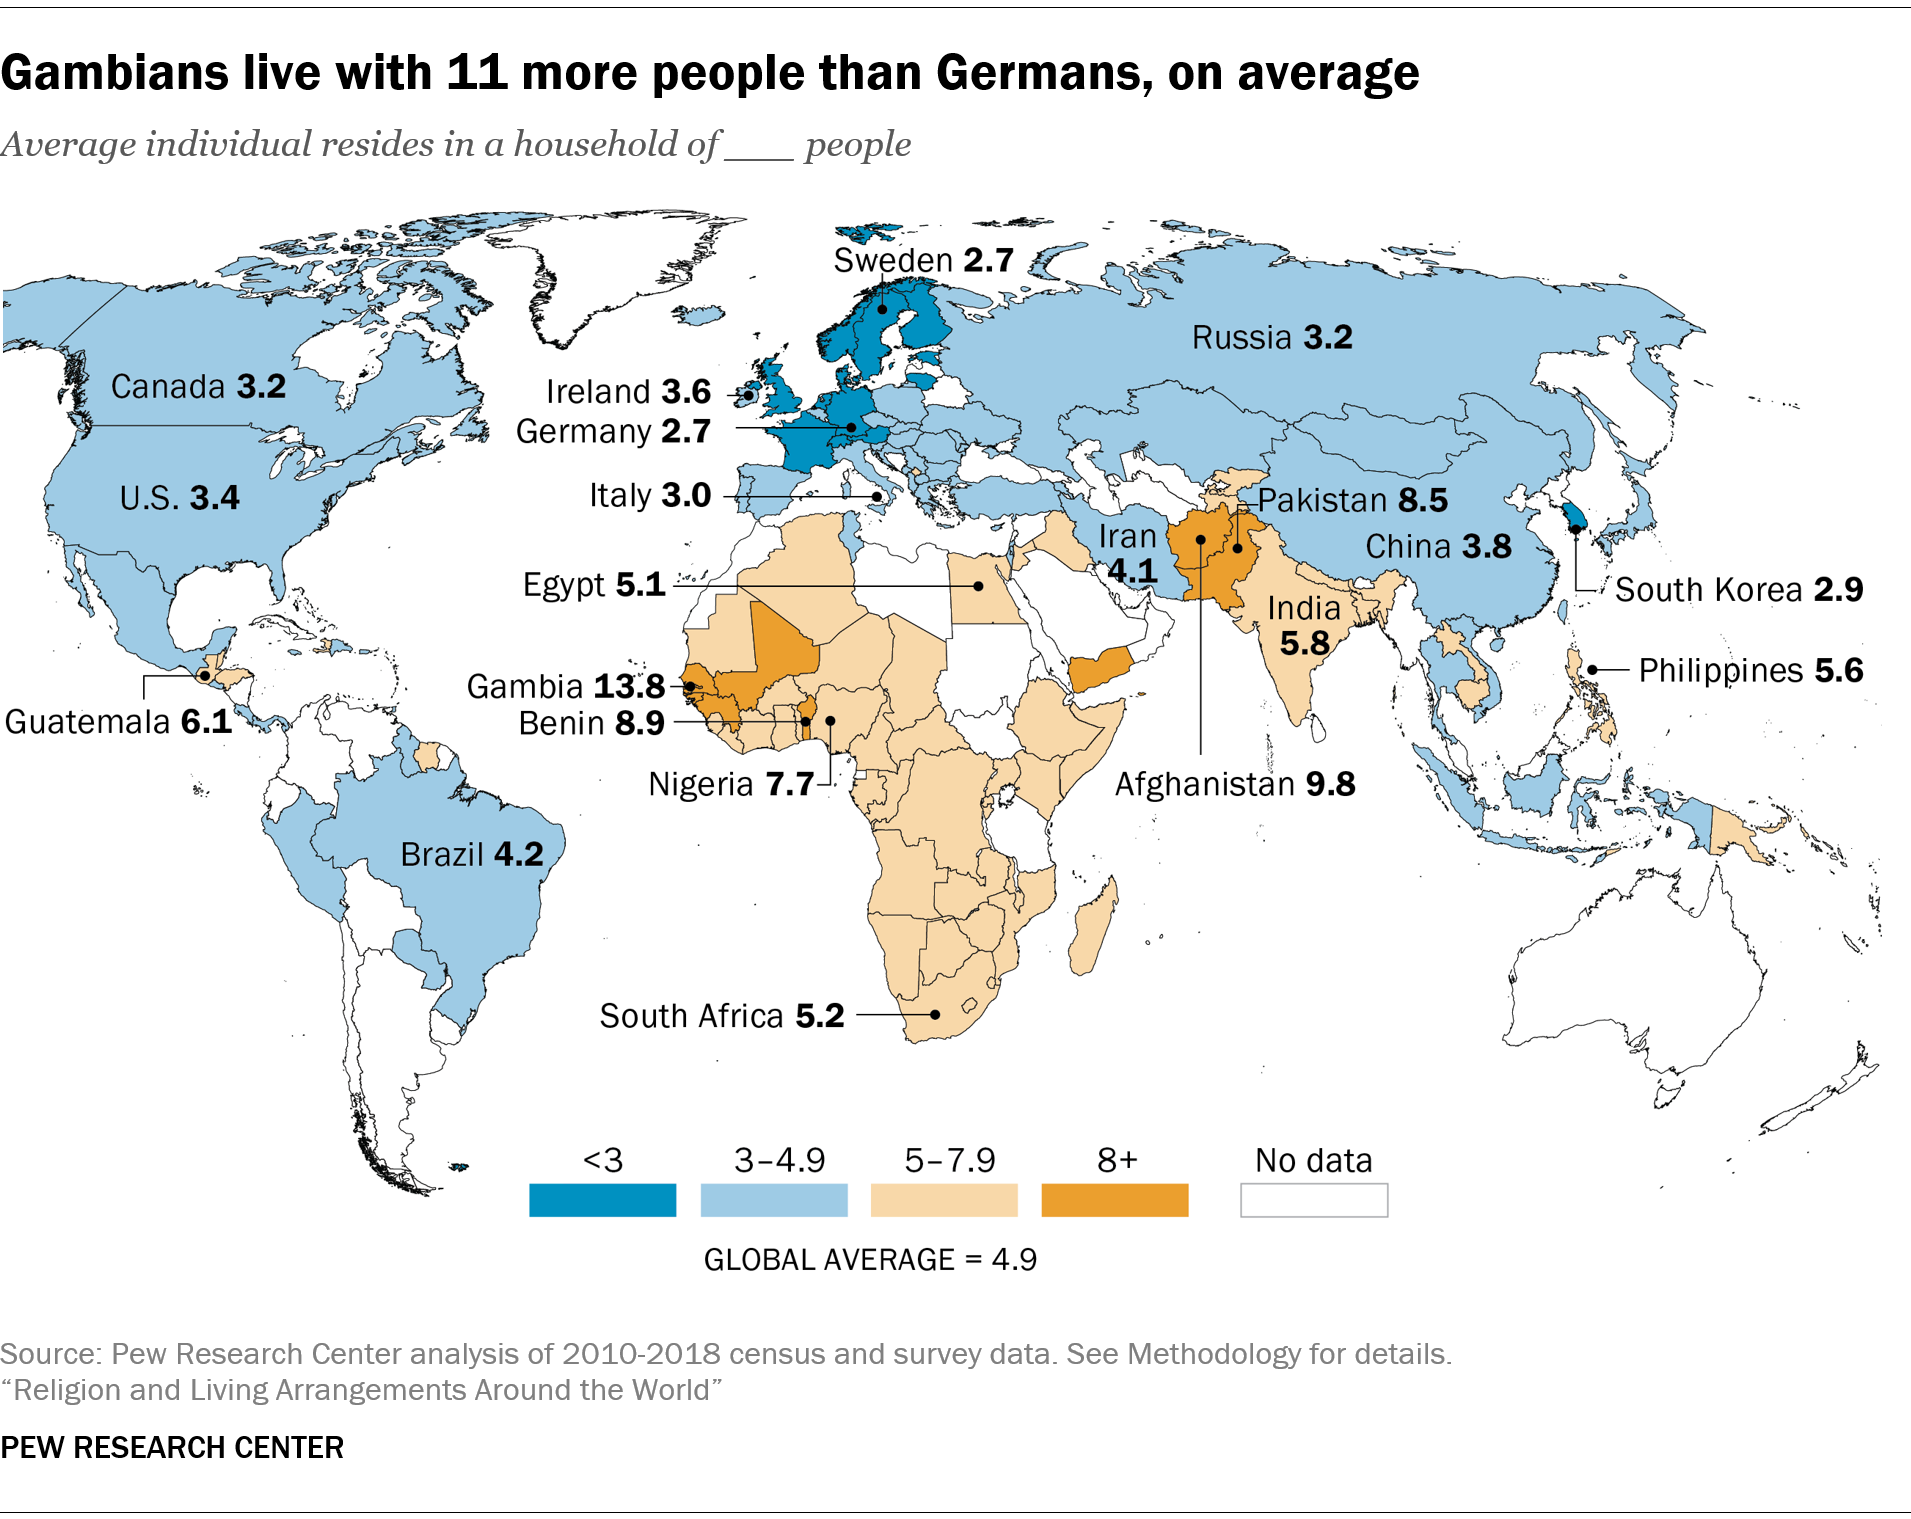 Gambians live with 11 more people than Germans, on average